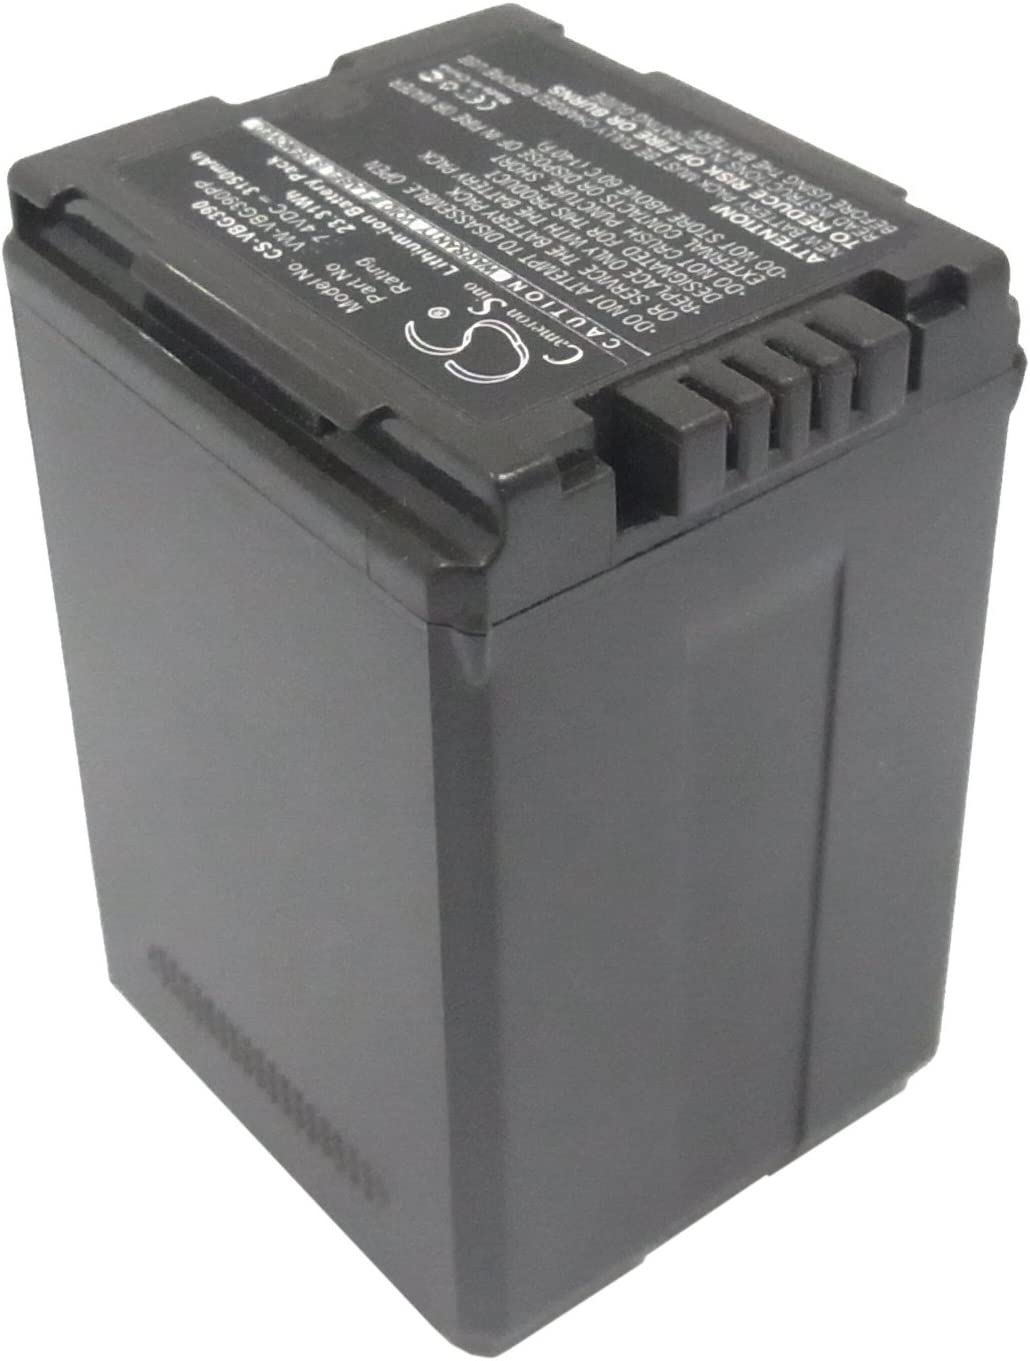 Cameron Sino Inventory cleanup selling sale Rechargeble Battery Super sale for HDC-HS300 Panasonic